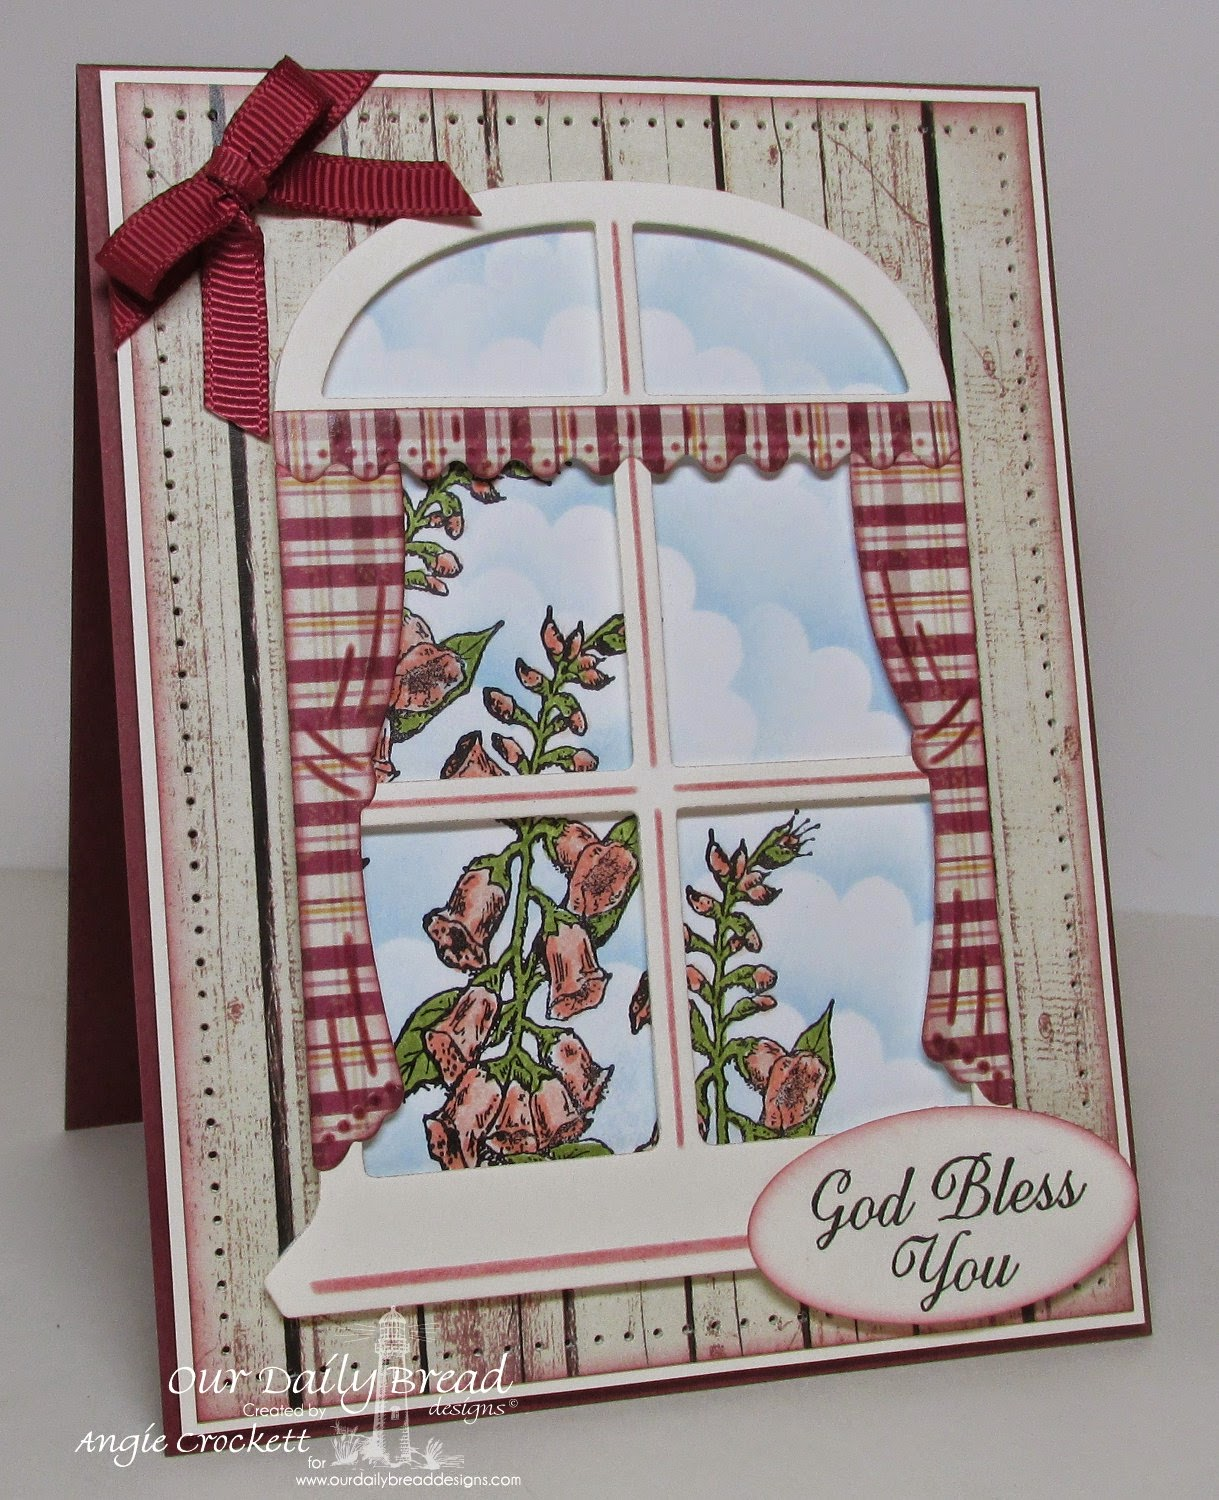 ODBD Custom Windows Die Set, Bloom, Ornate Borders Sentiments, Rustic Beauty Designer Paper Collection, Card Designer Angie Crockett